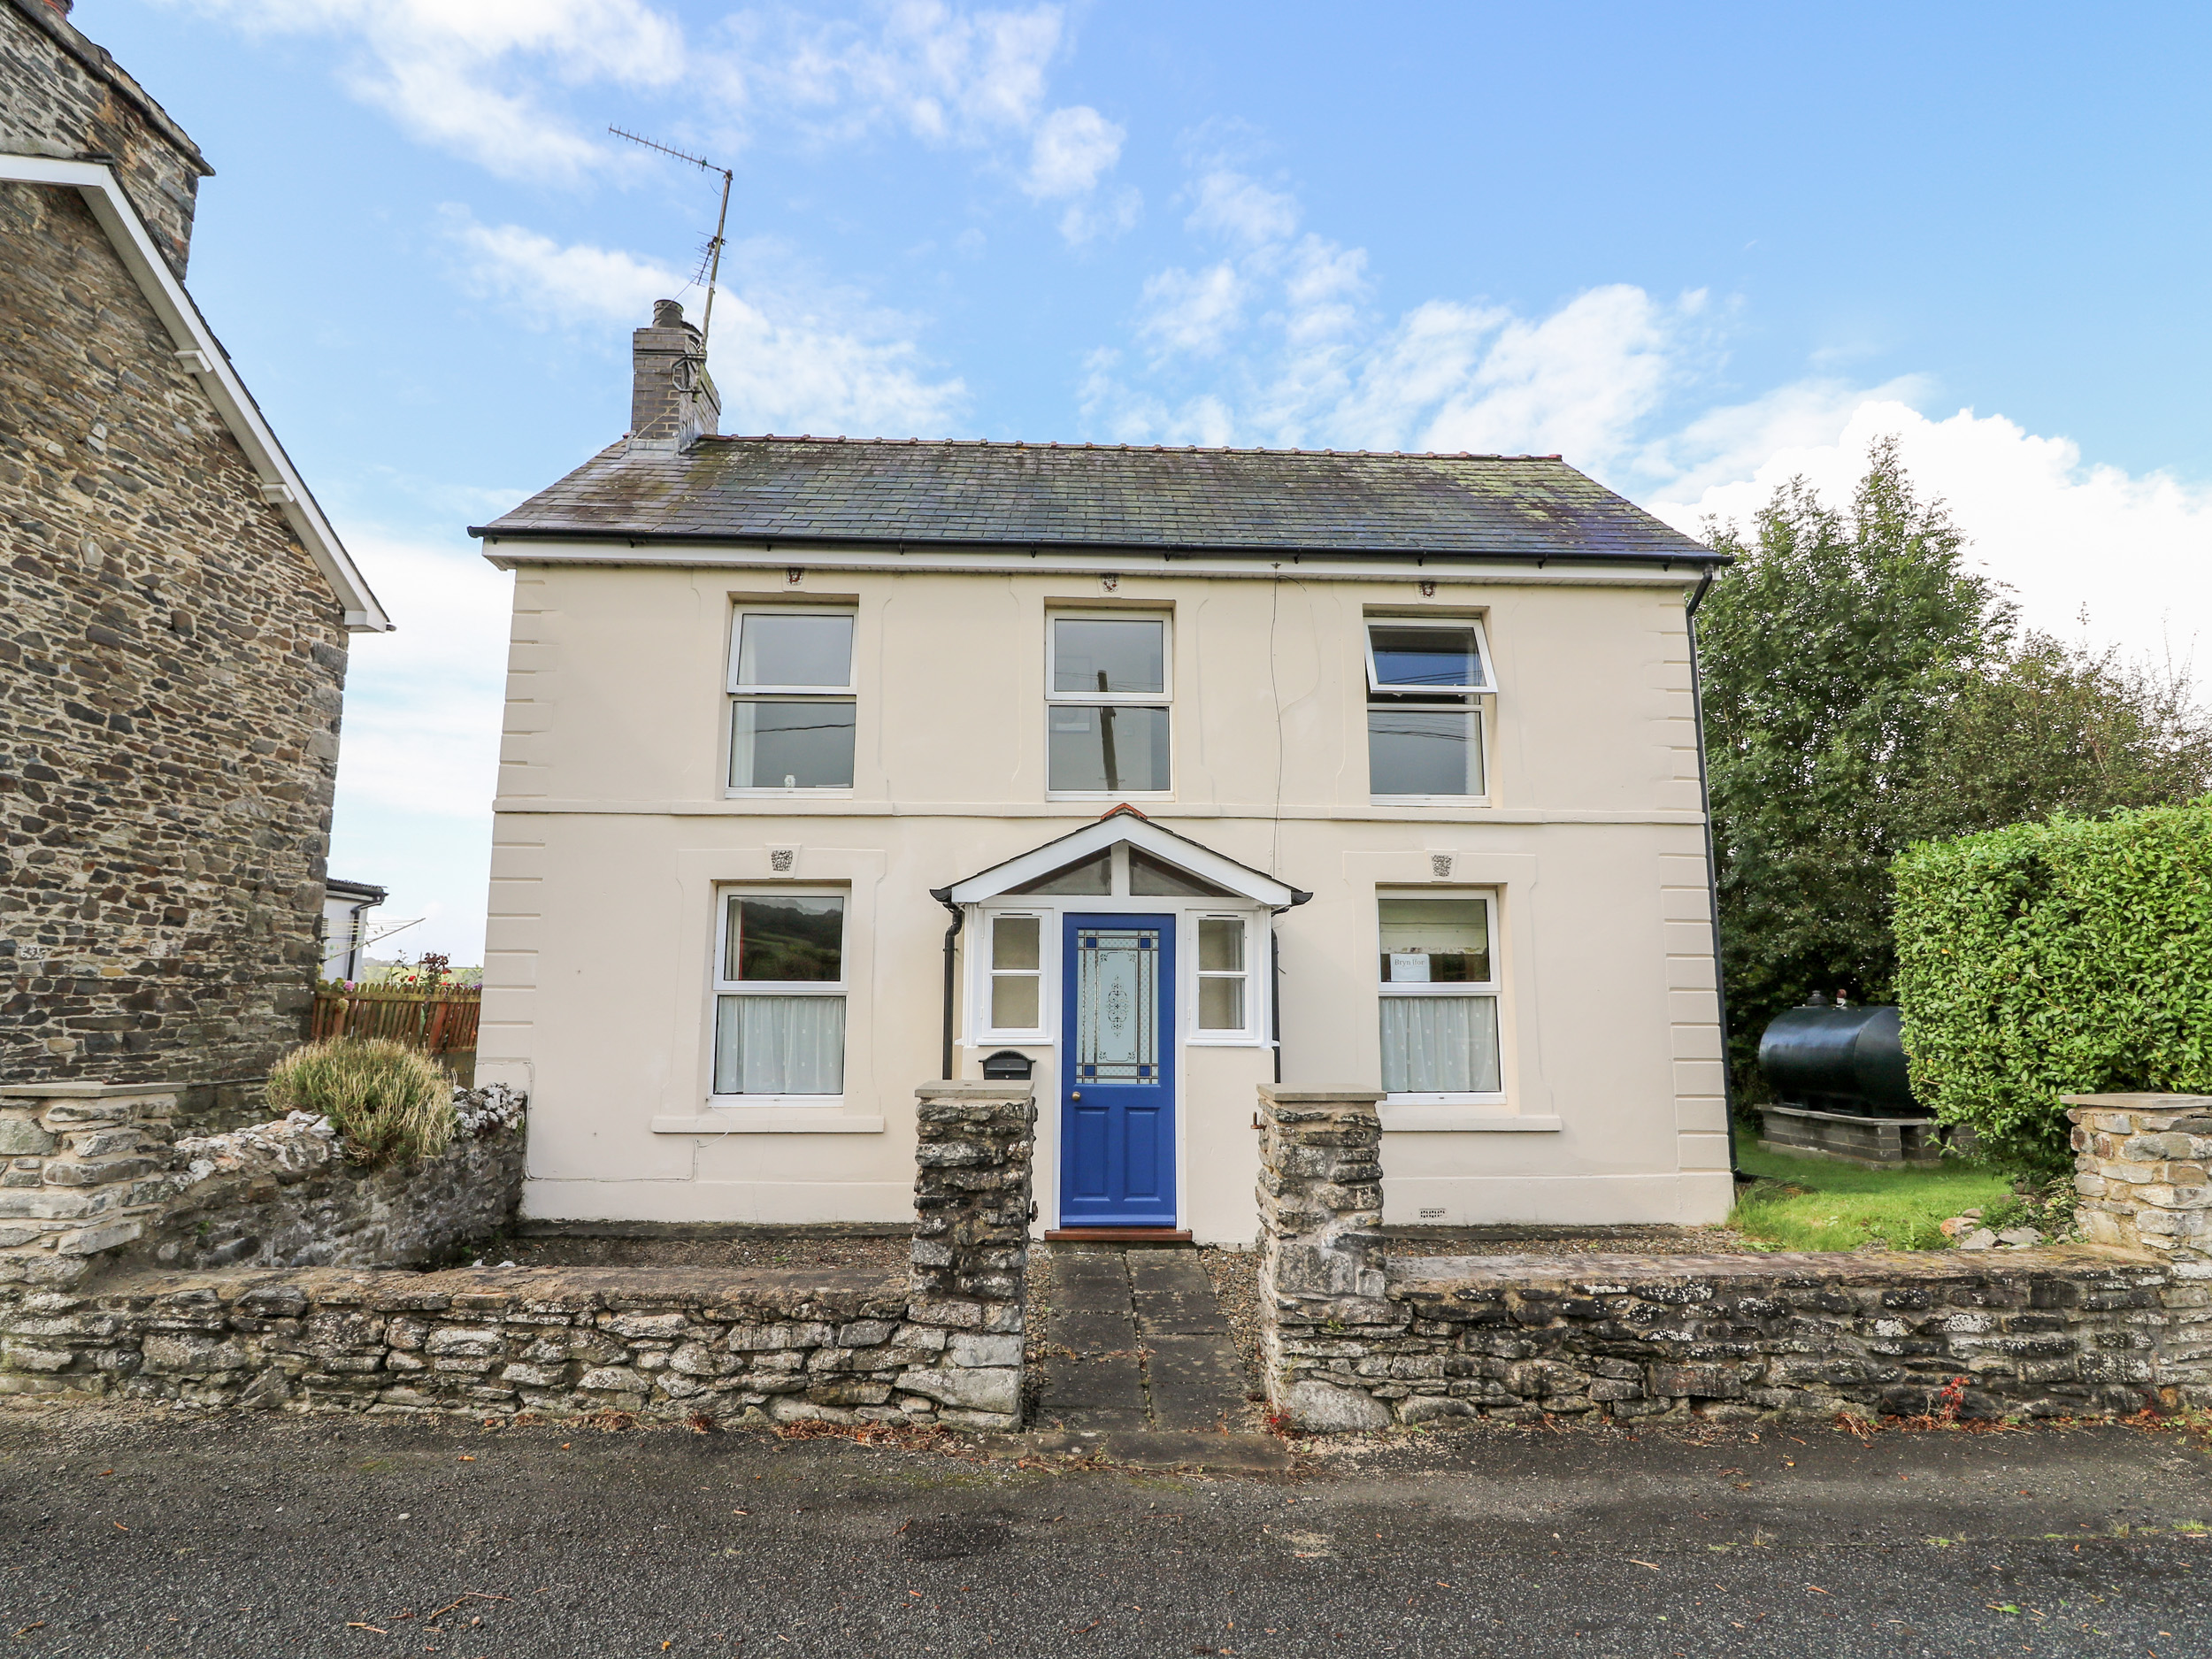 3 bedroom Cottage for rent in Lampeter